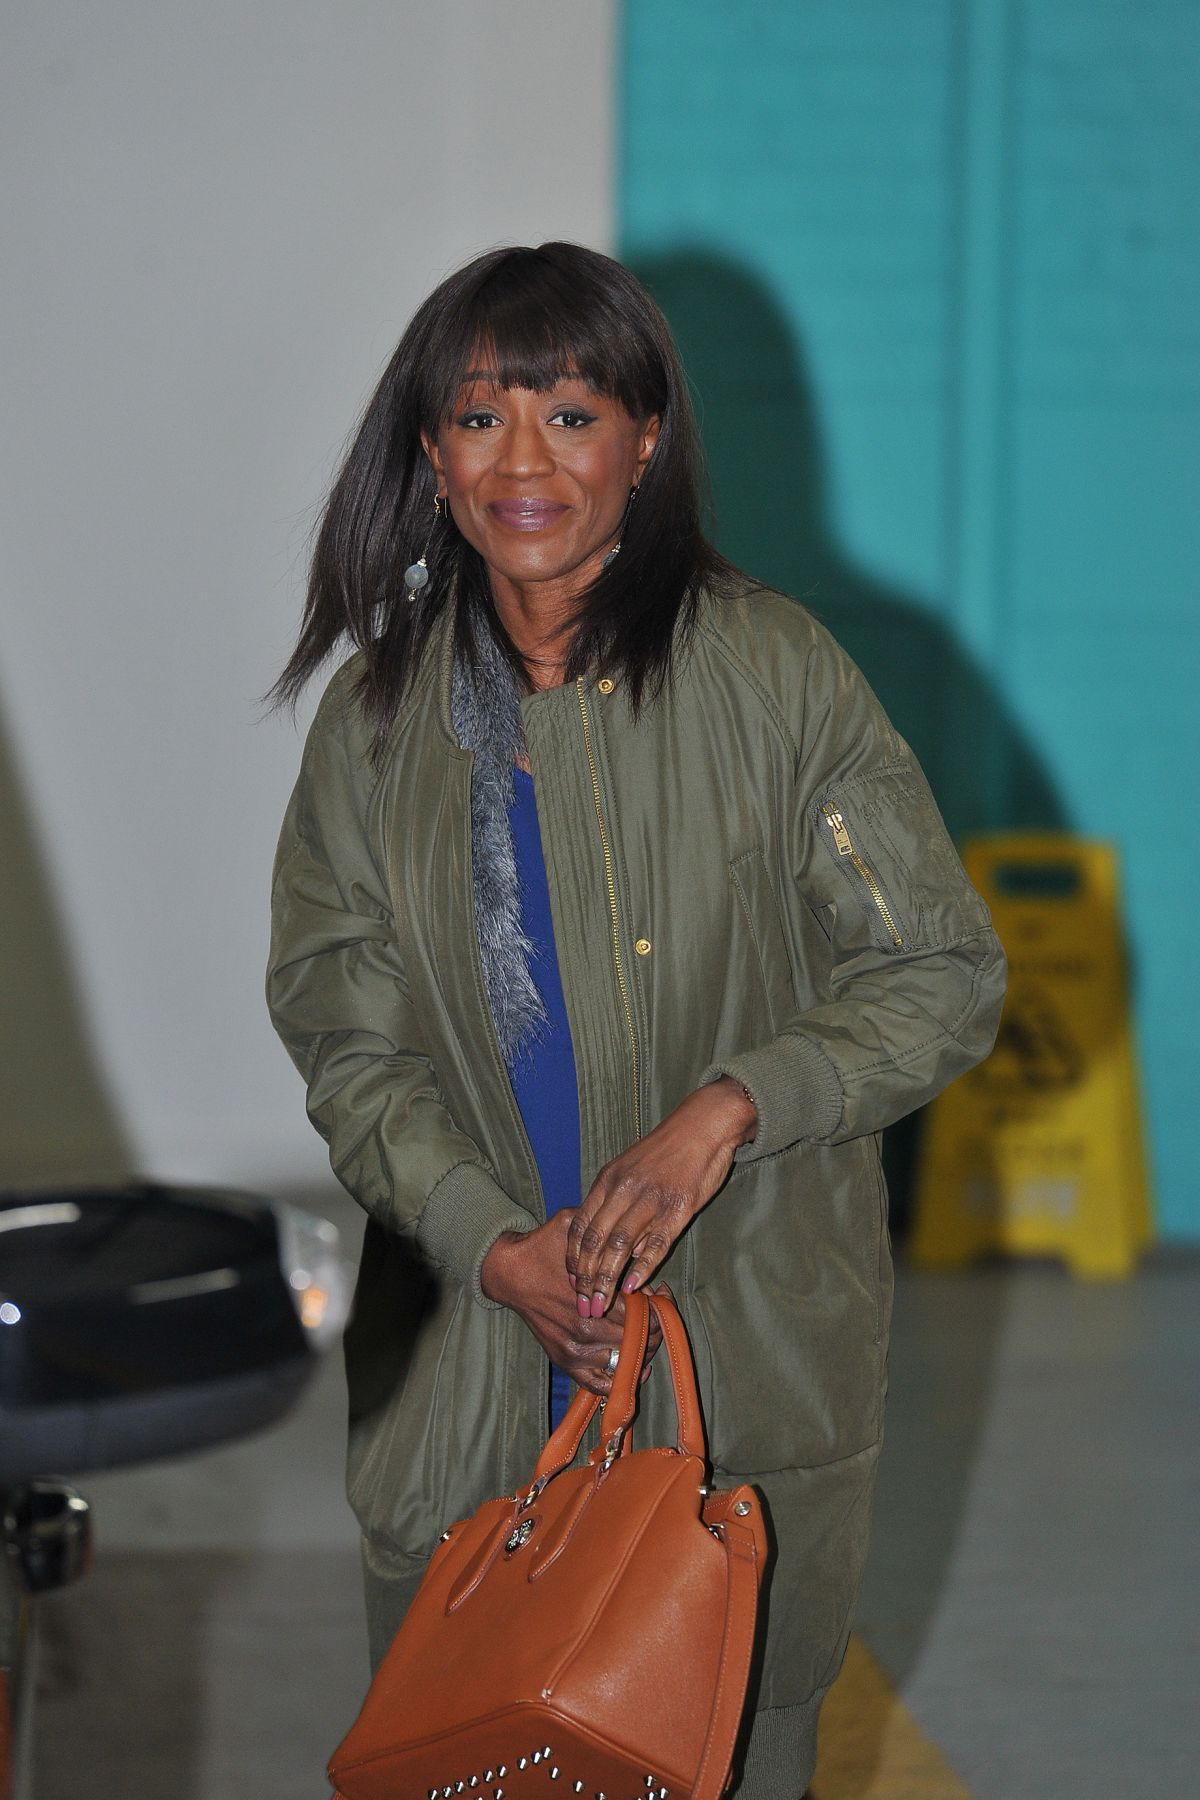 DIANE PARISH at IT Studios in London 02/12/2016